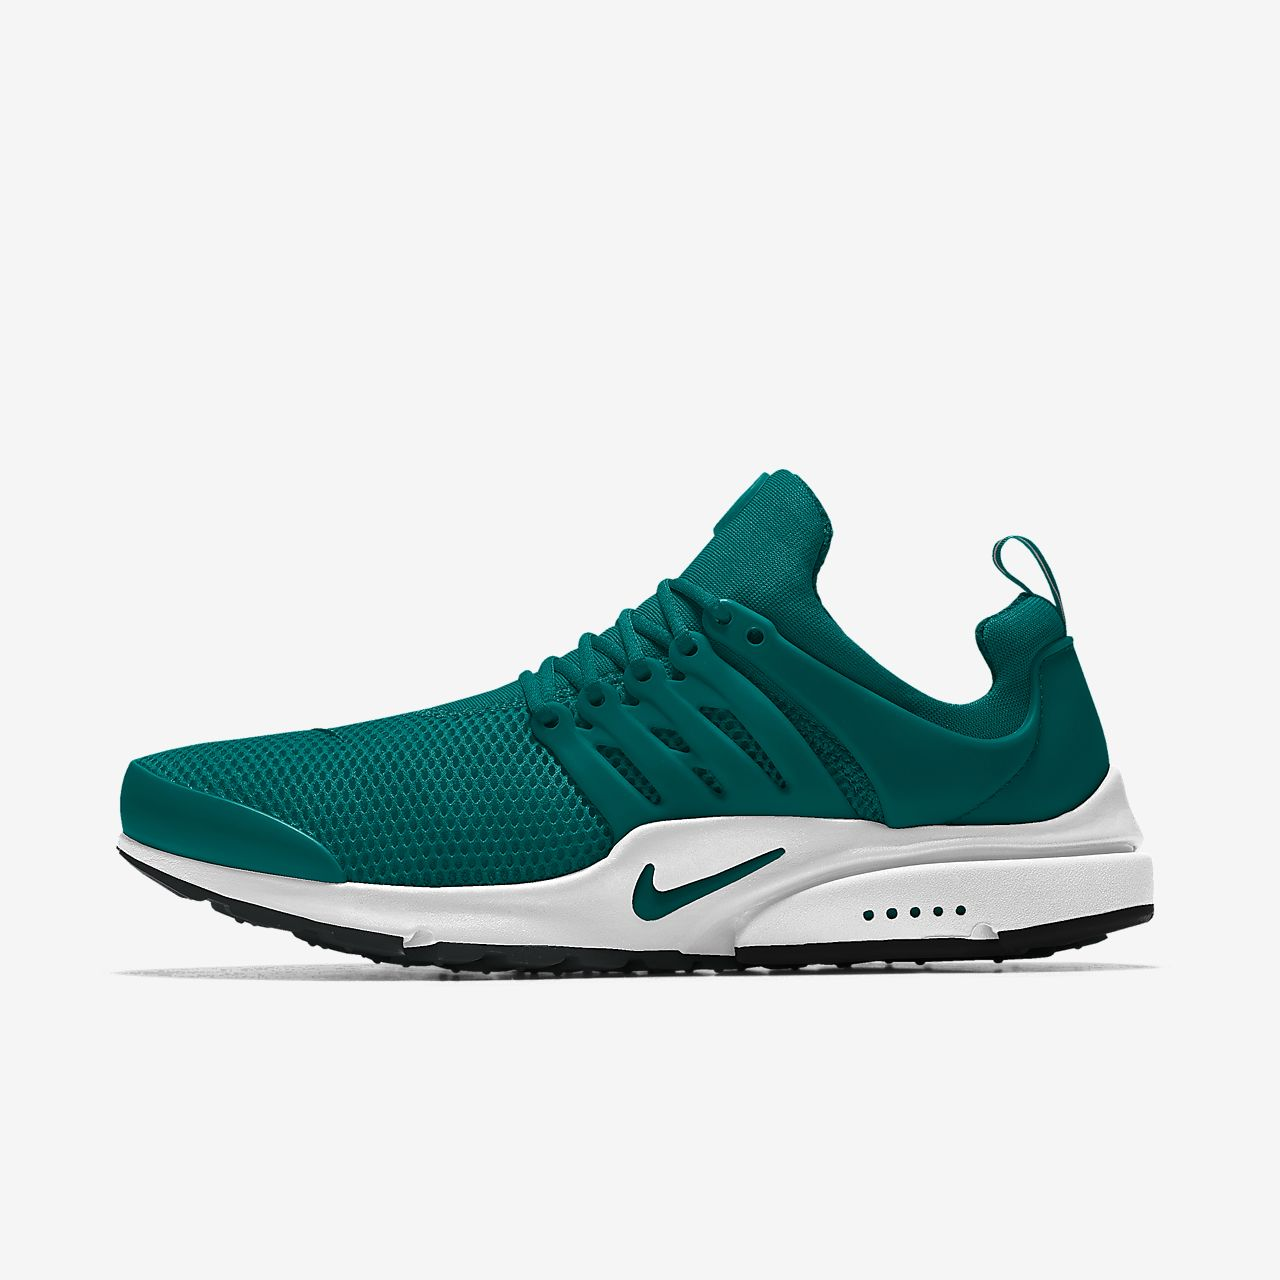 Scarpa personalizzabile Nike Air Presto By You - Uomo